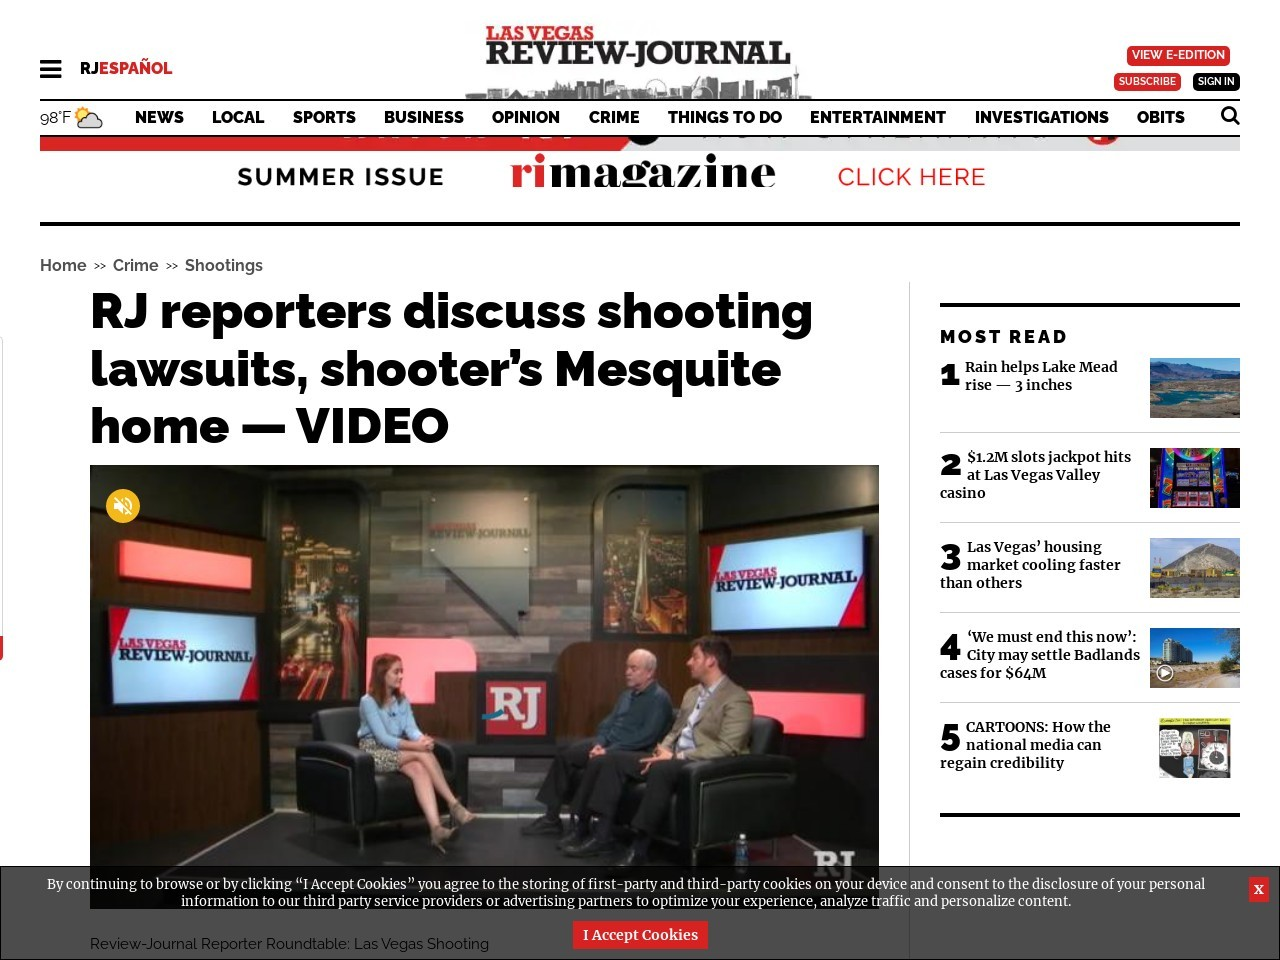 RJ reporters discuss shooting lawsuits, shooter's Mesquite home — VIDEO